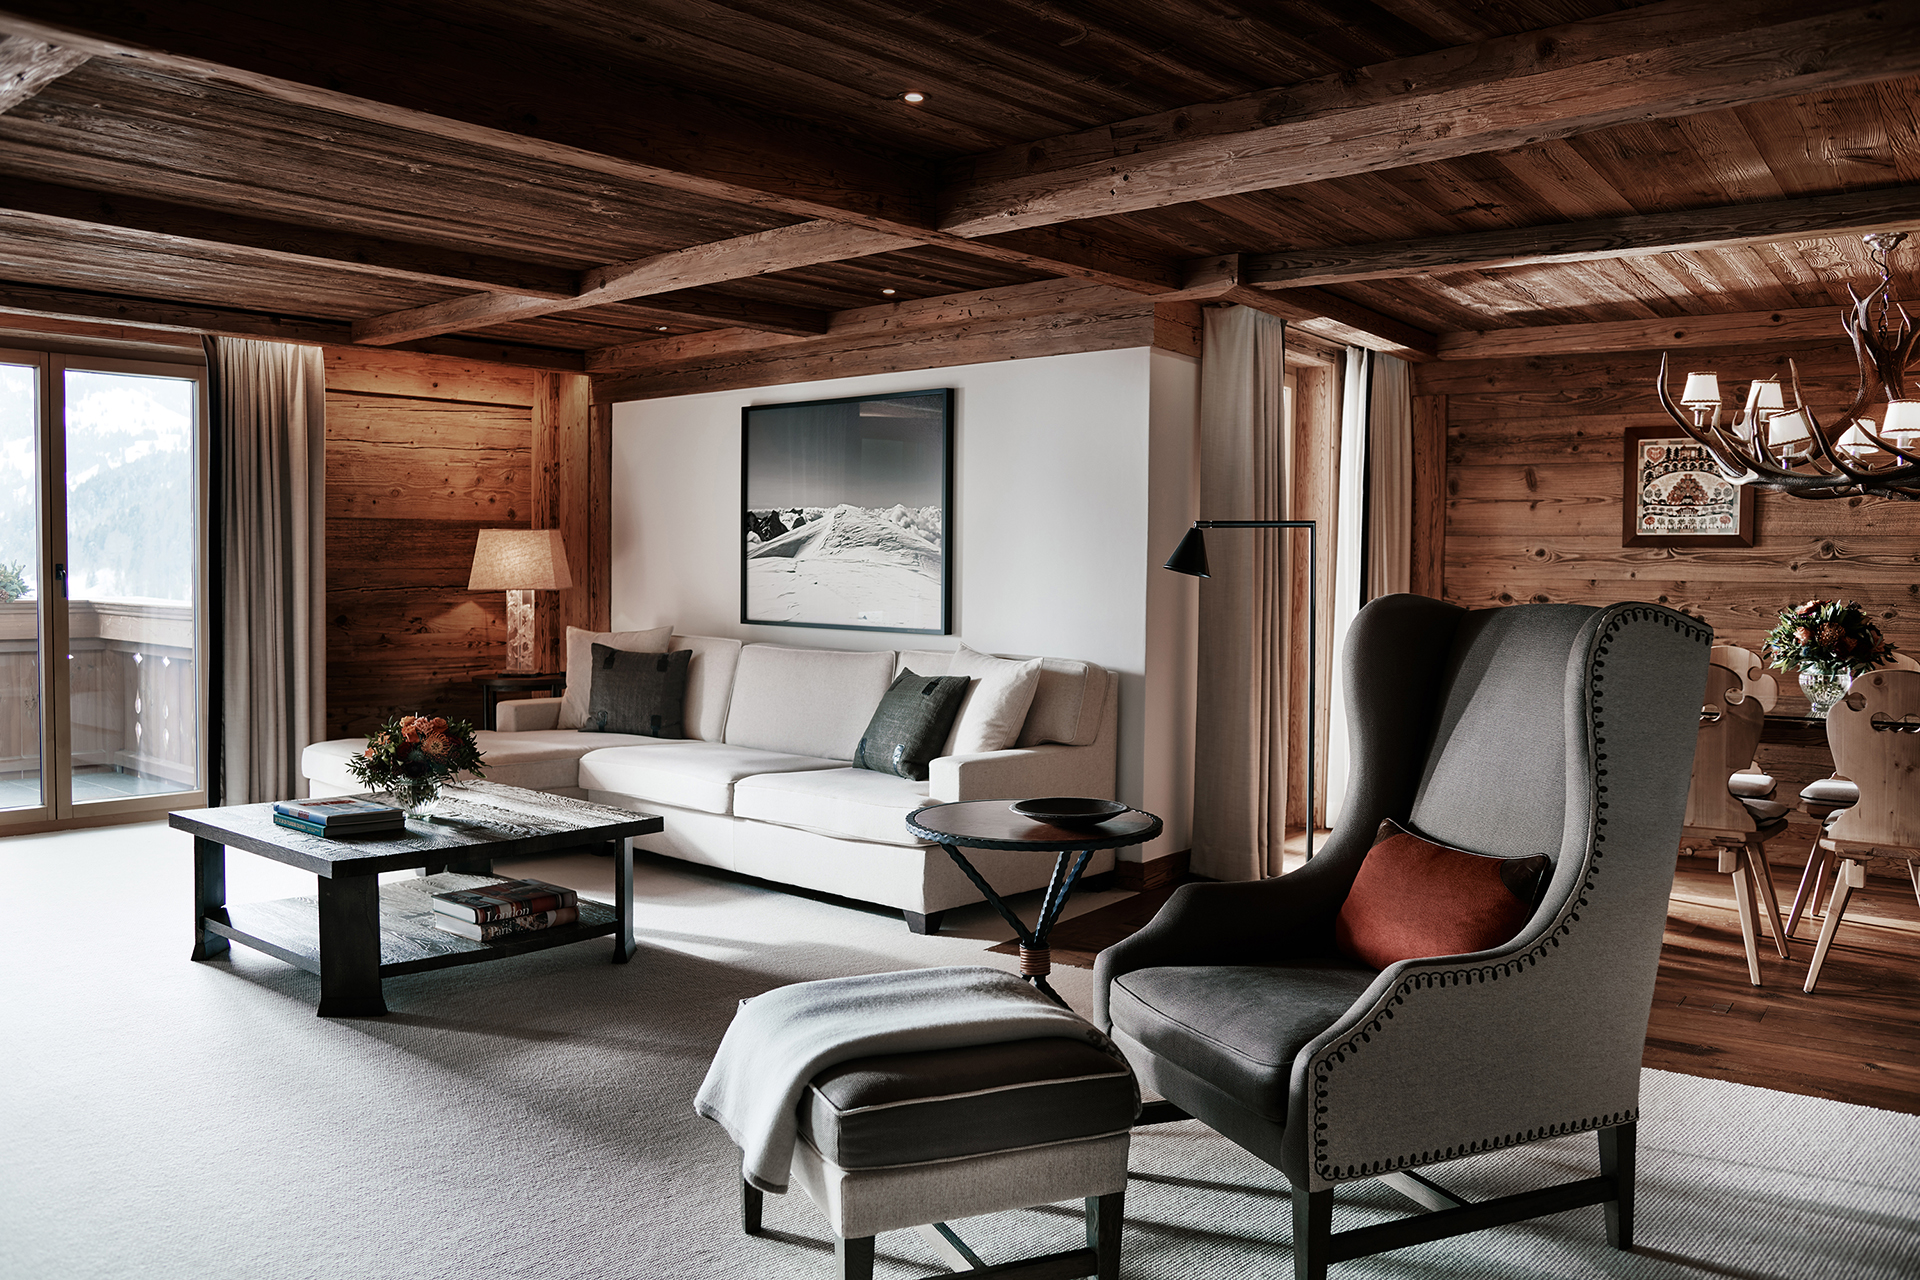 TheAlpinaGstaad_Rooms&Suites_0064_1920.jpg